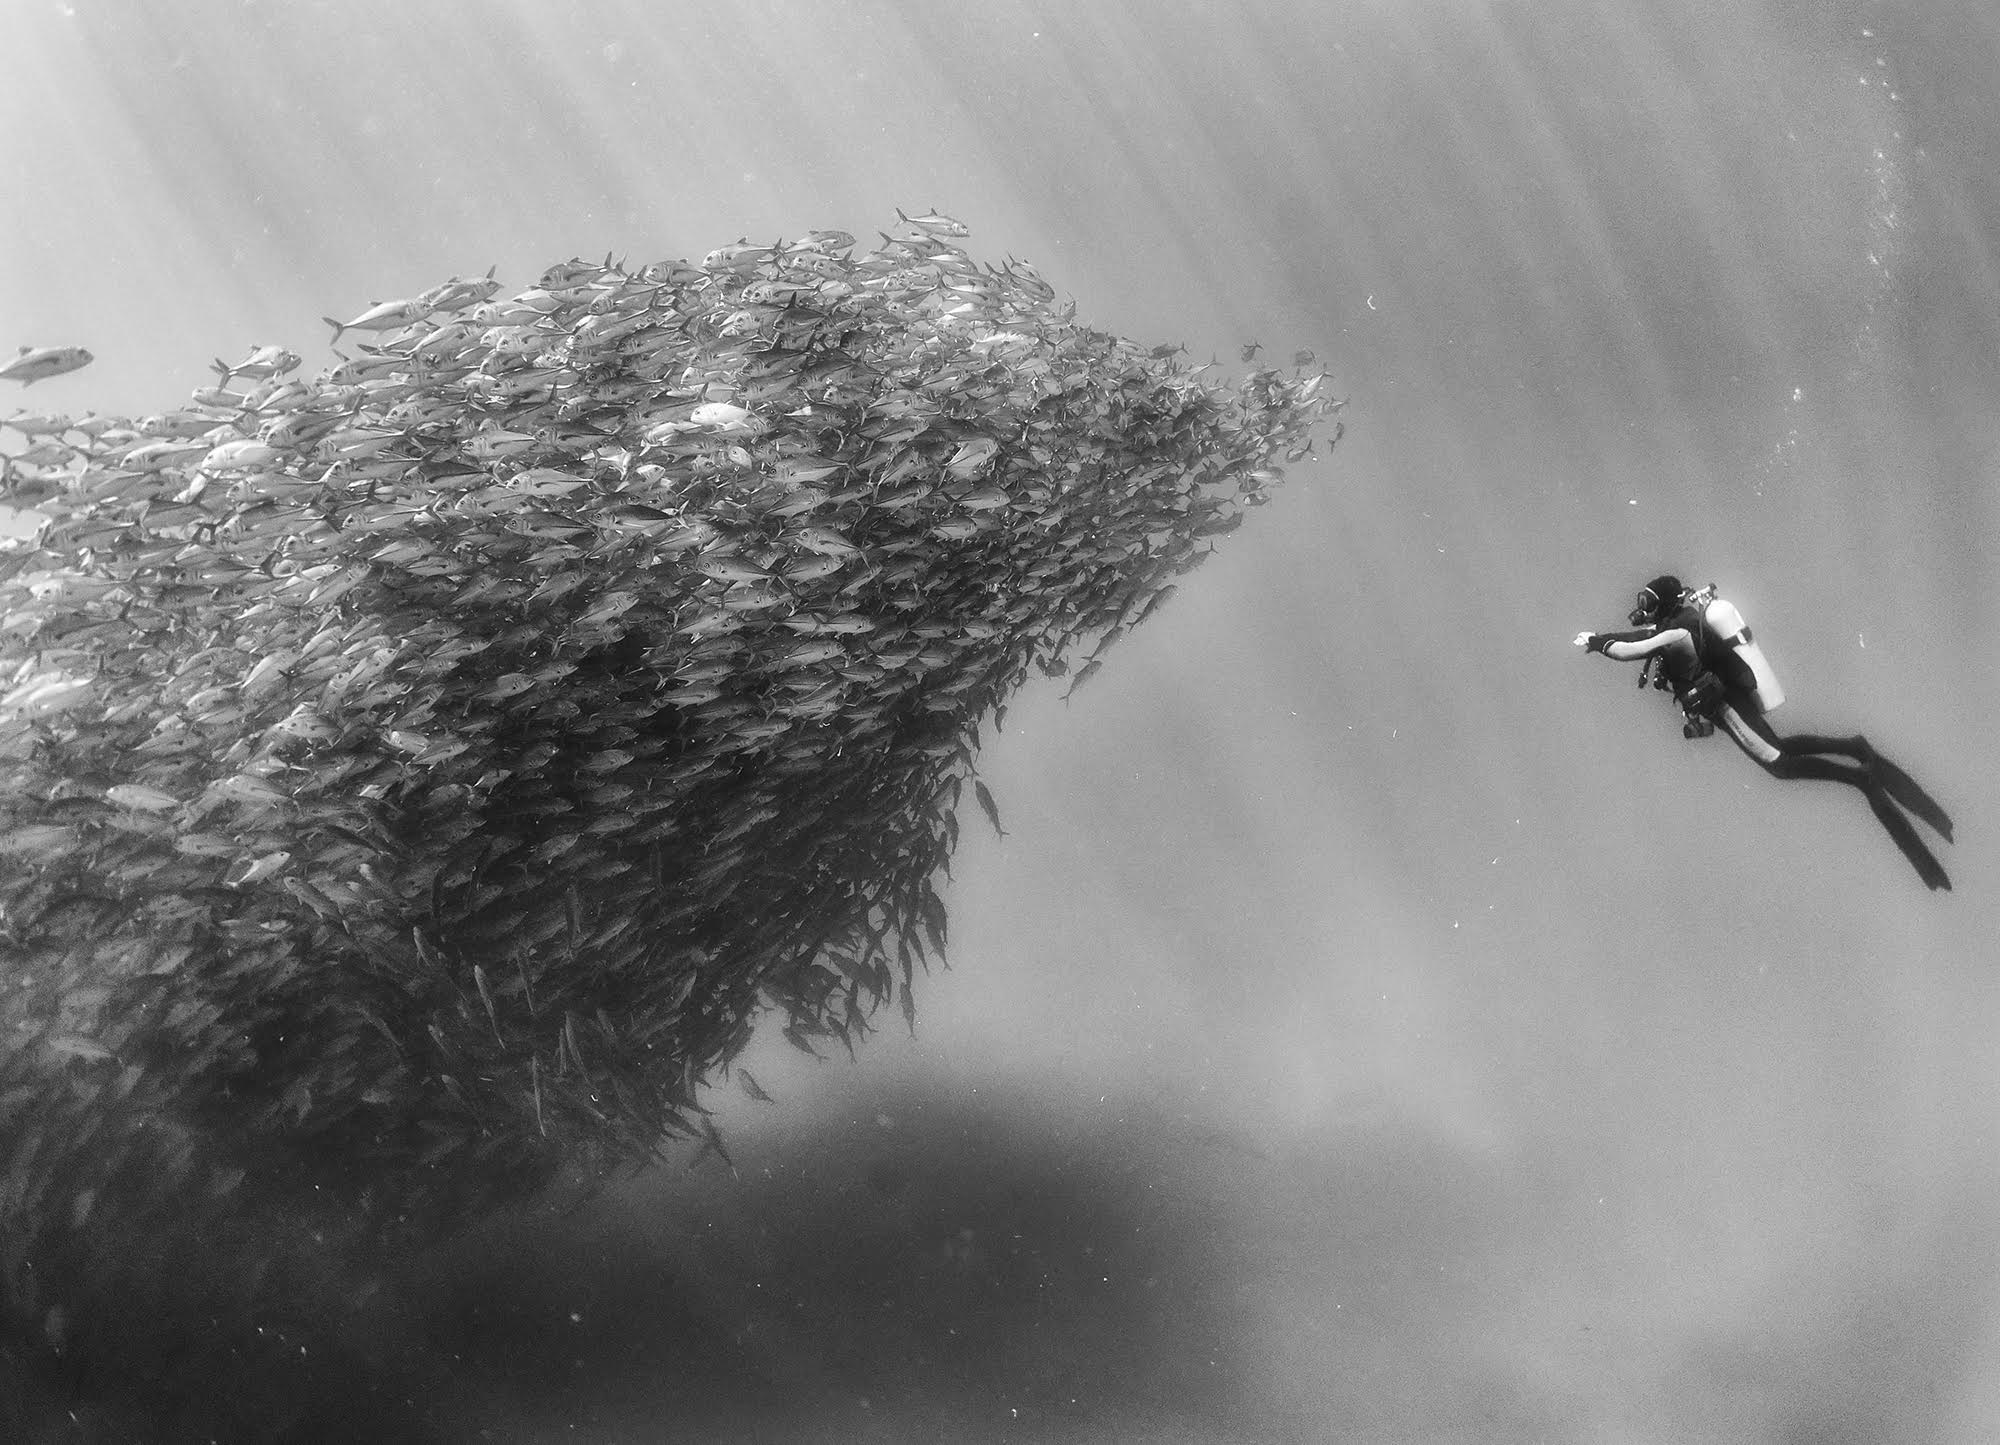 Black and white underwater photography by anuar patjane school of fish